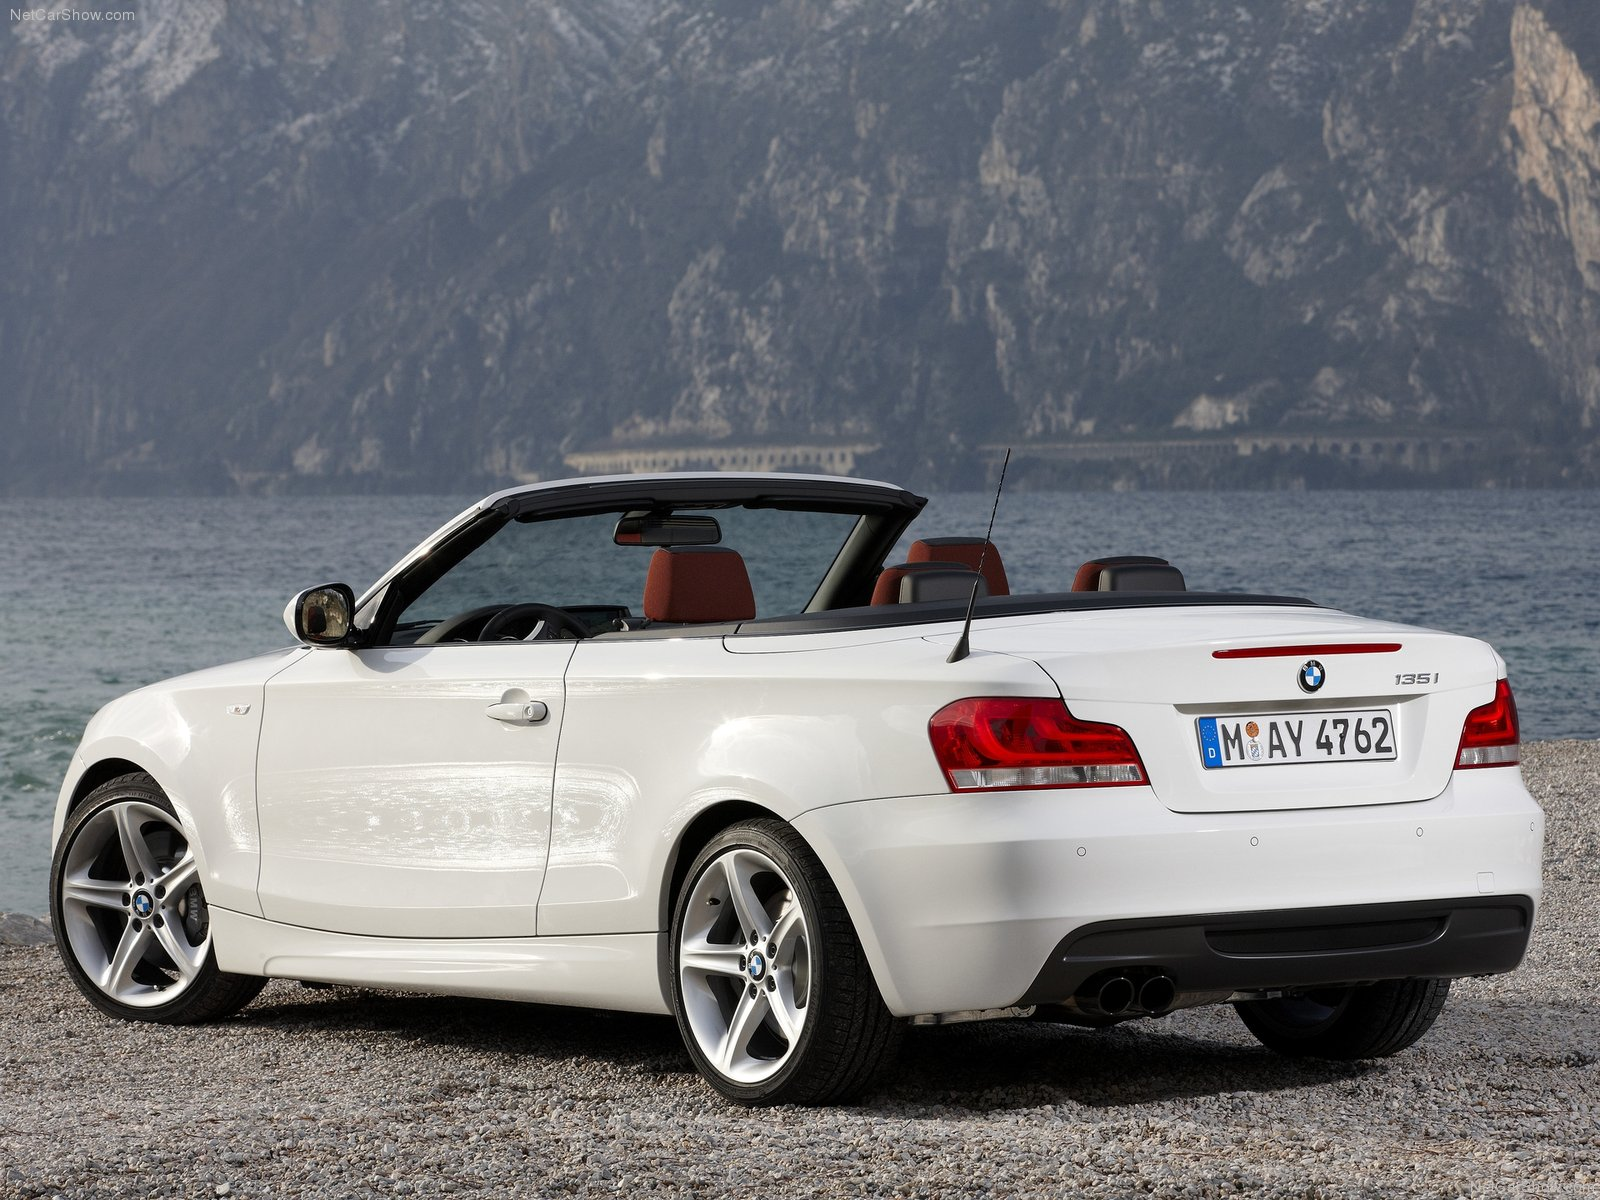 You can vote for this BMW 1-series Cabrio E88 photo